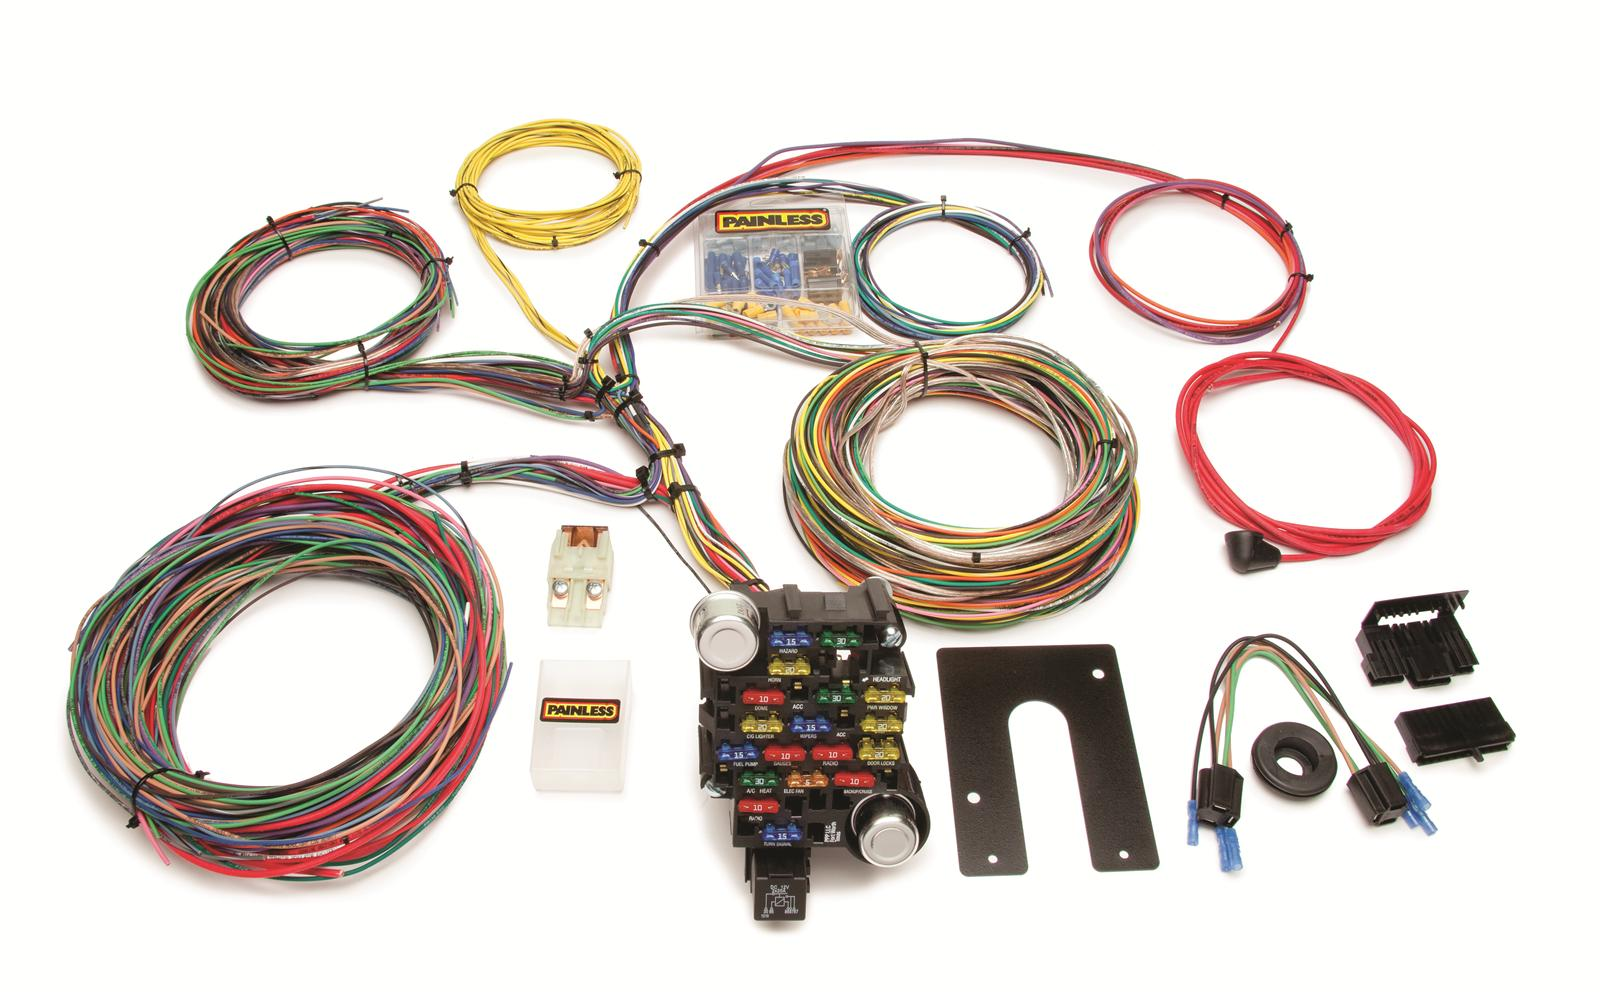 Painless Performance 28 Circuit Universal Harnesses 10202 Free 1999 Infinity Eagle Fuse Box Diagram Shipping On Orders Over 99 At Summit Racing